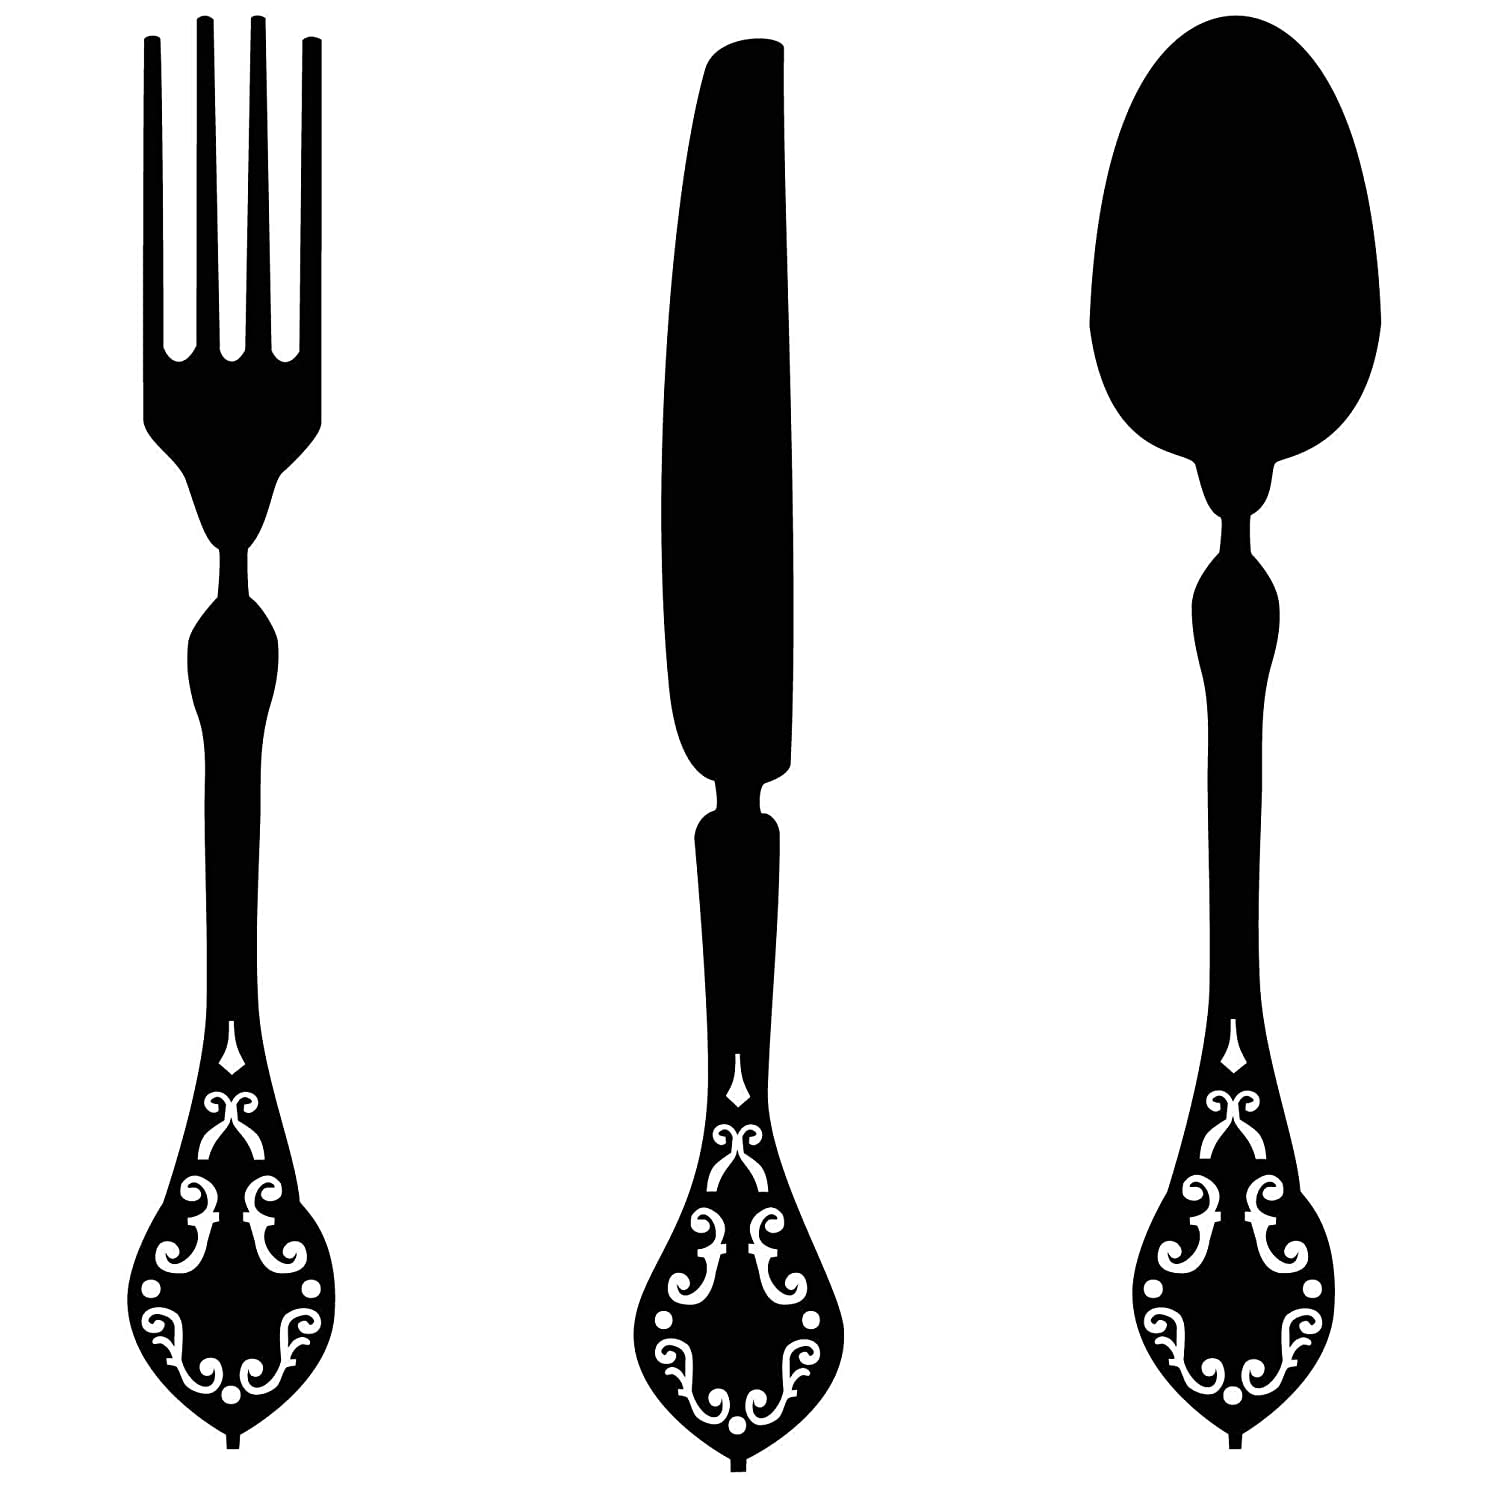 Kitchen Silverware Utensils Wall Decals | Fork Knife, Spoon Silhouettes | Dining Room, Restaurant Decor Vinyl Stickers | Black, White, Gray, Pink, Blue, Metallic Gold, Silver, Red | Small, Large Sizes